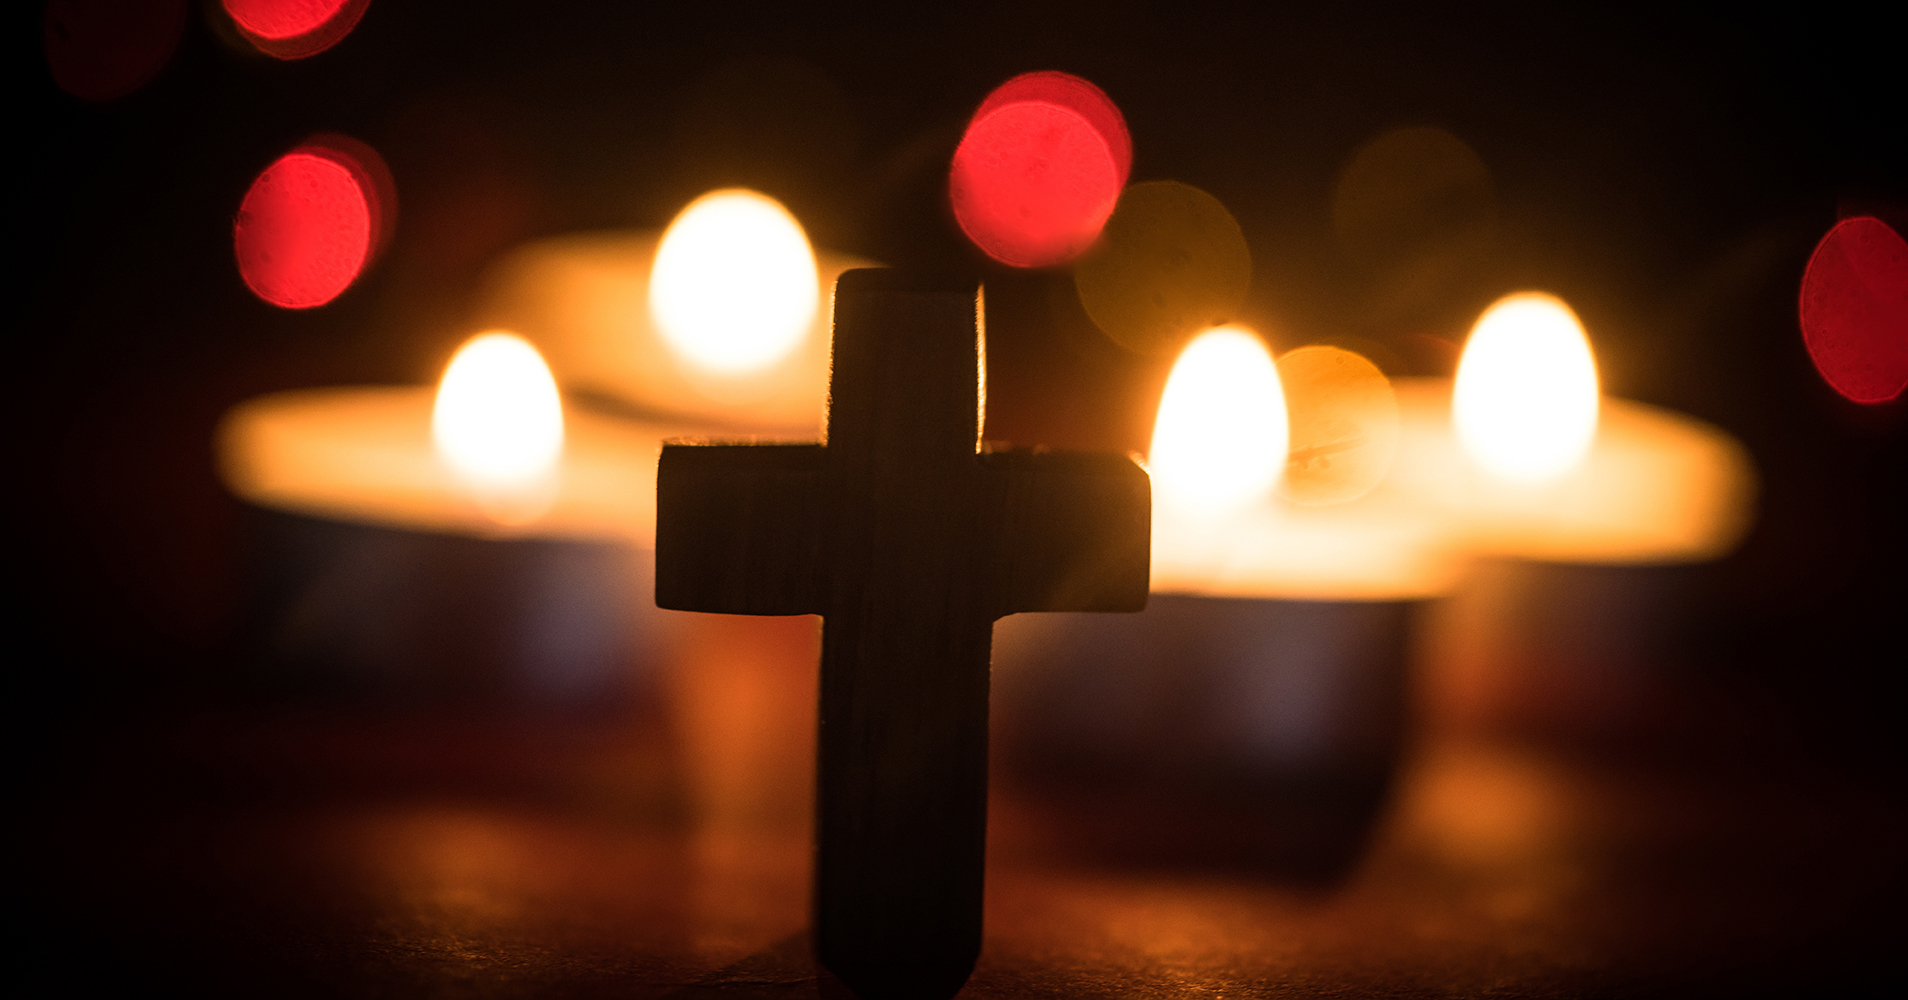 Stock image of tea-light candles behind a cross